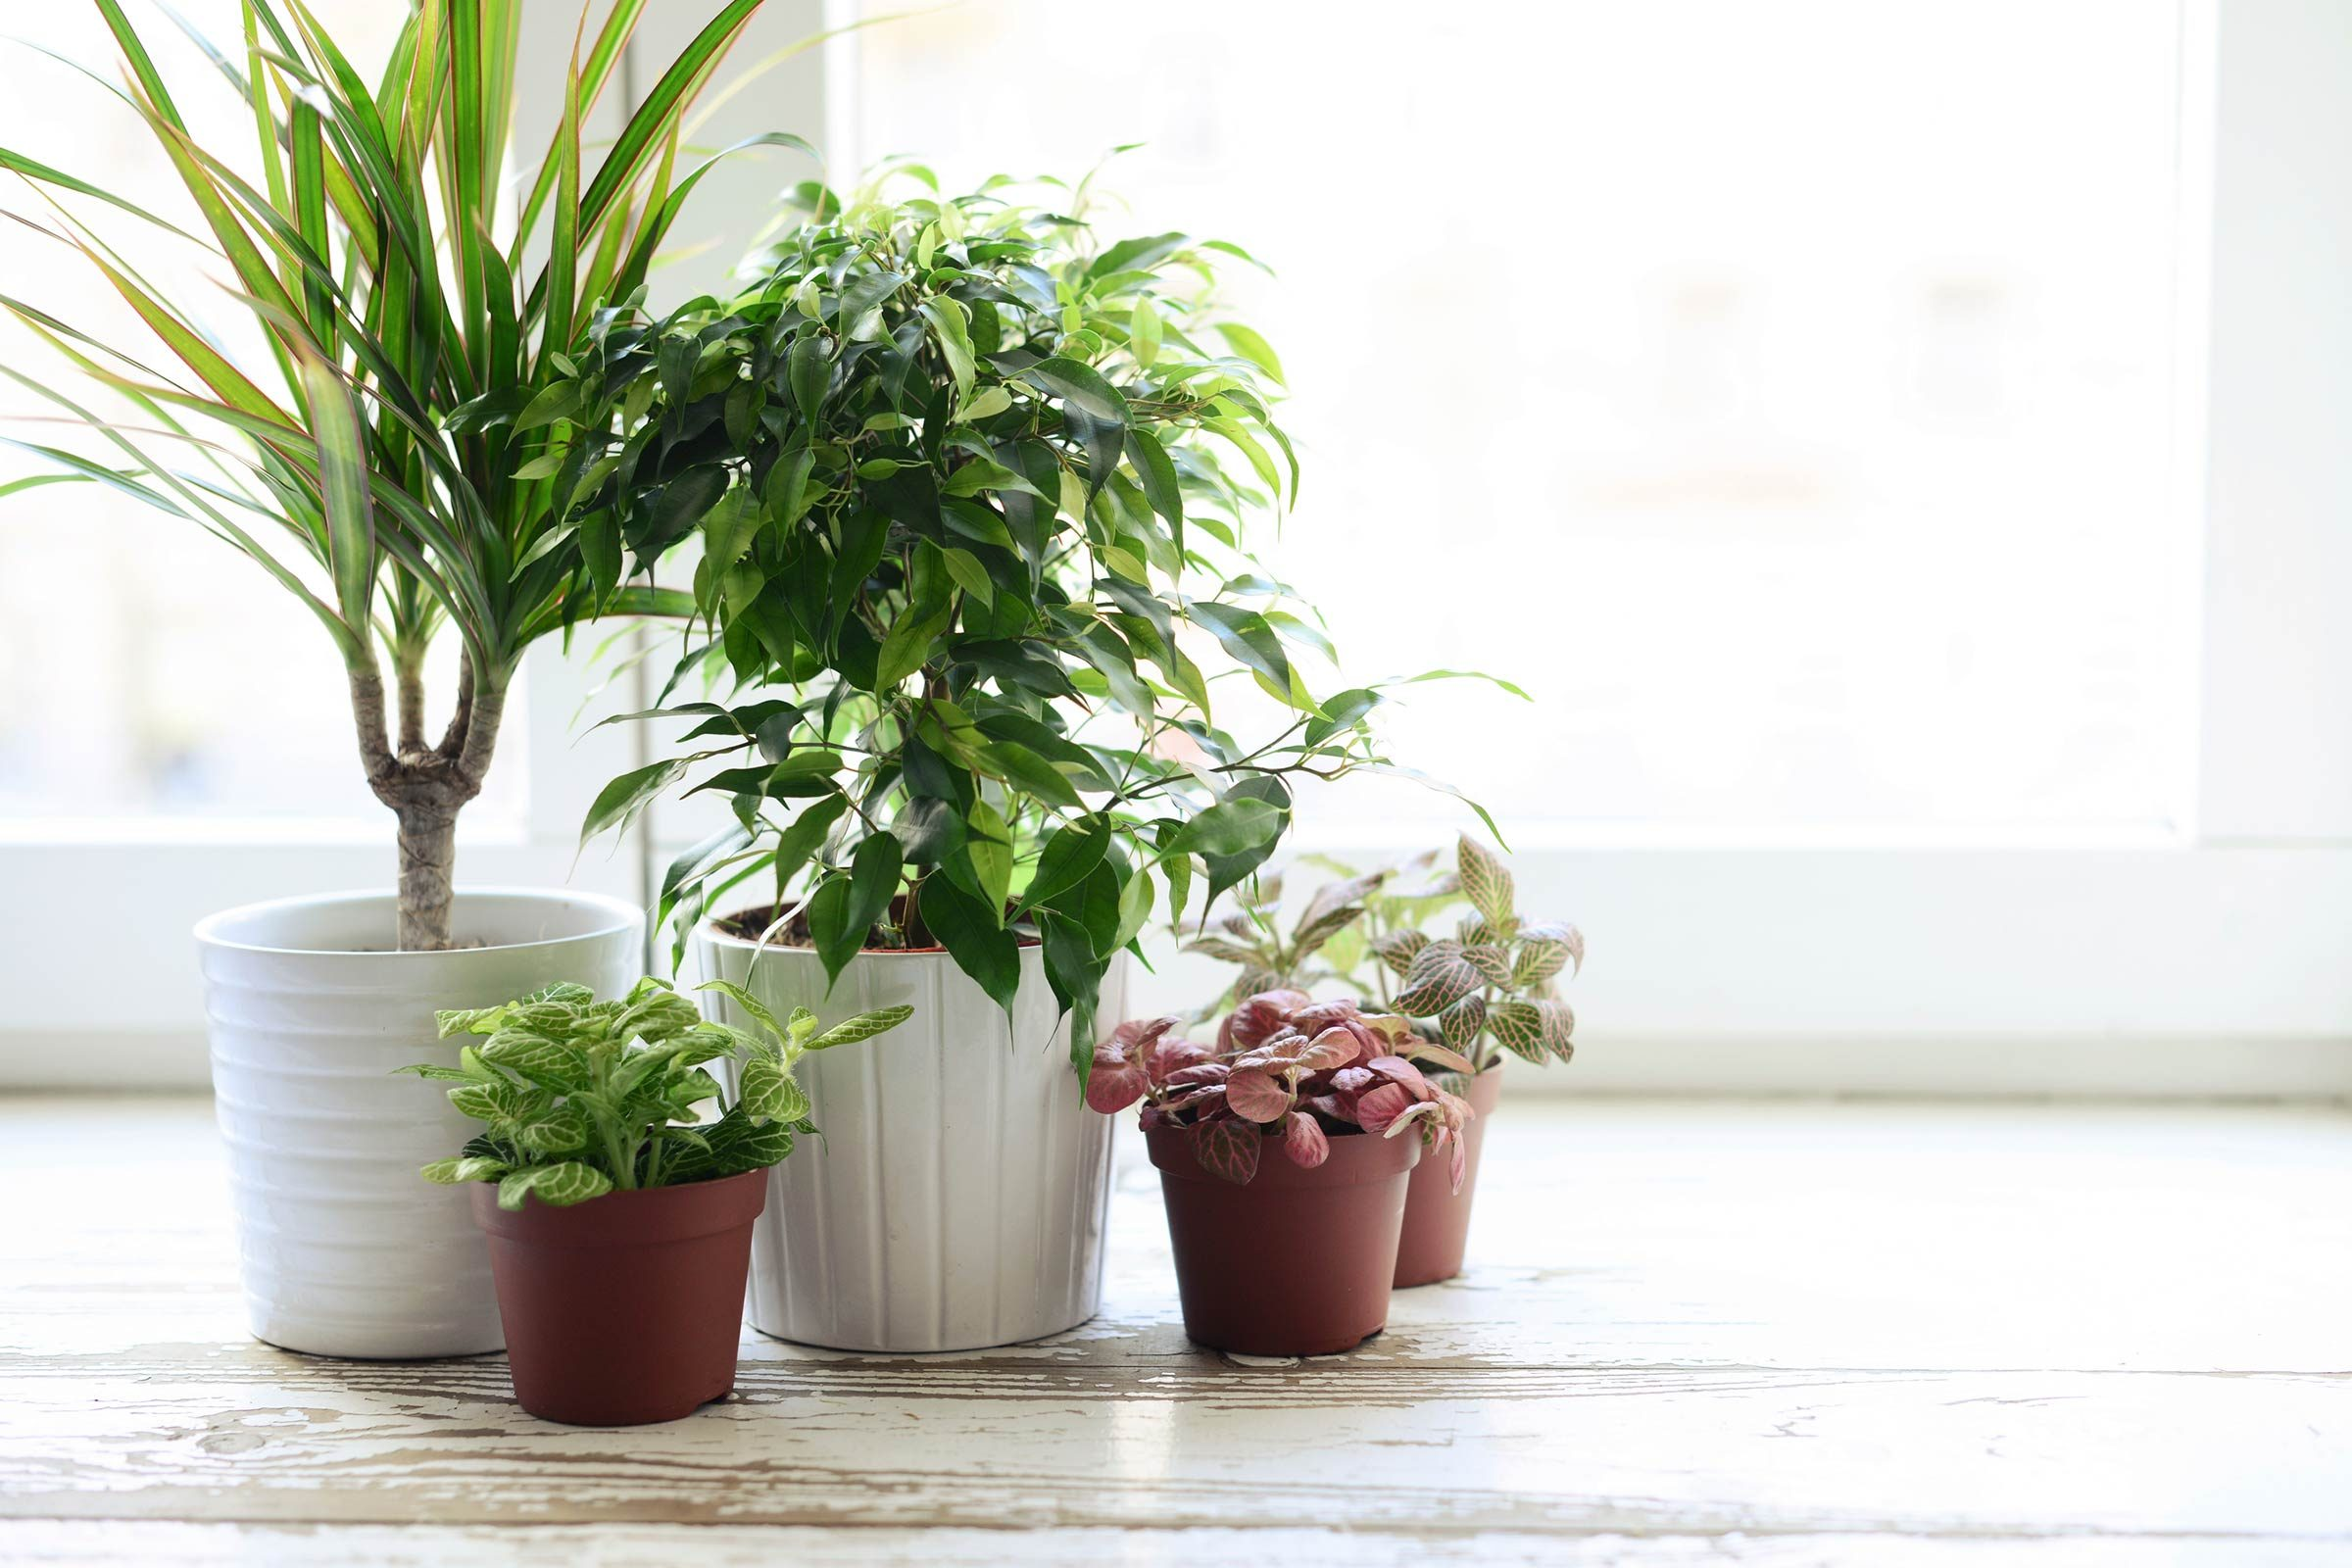 You dont have to repot big plants as often as small ones